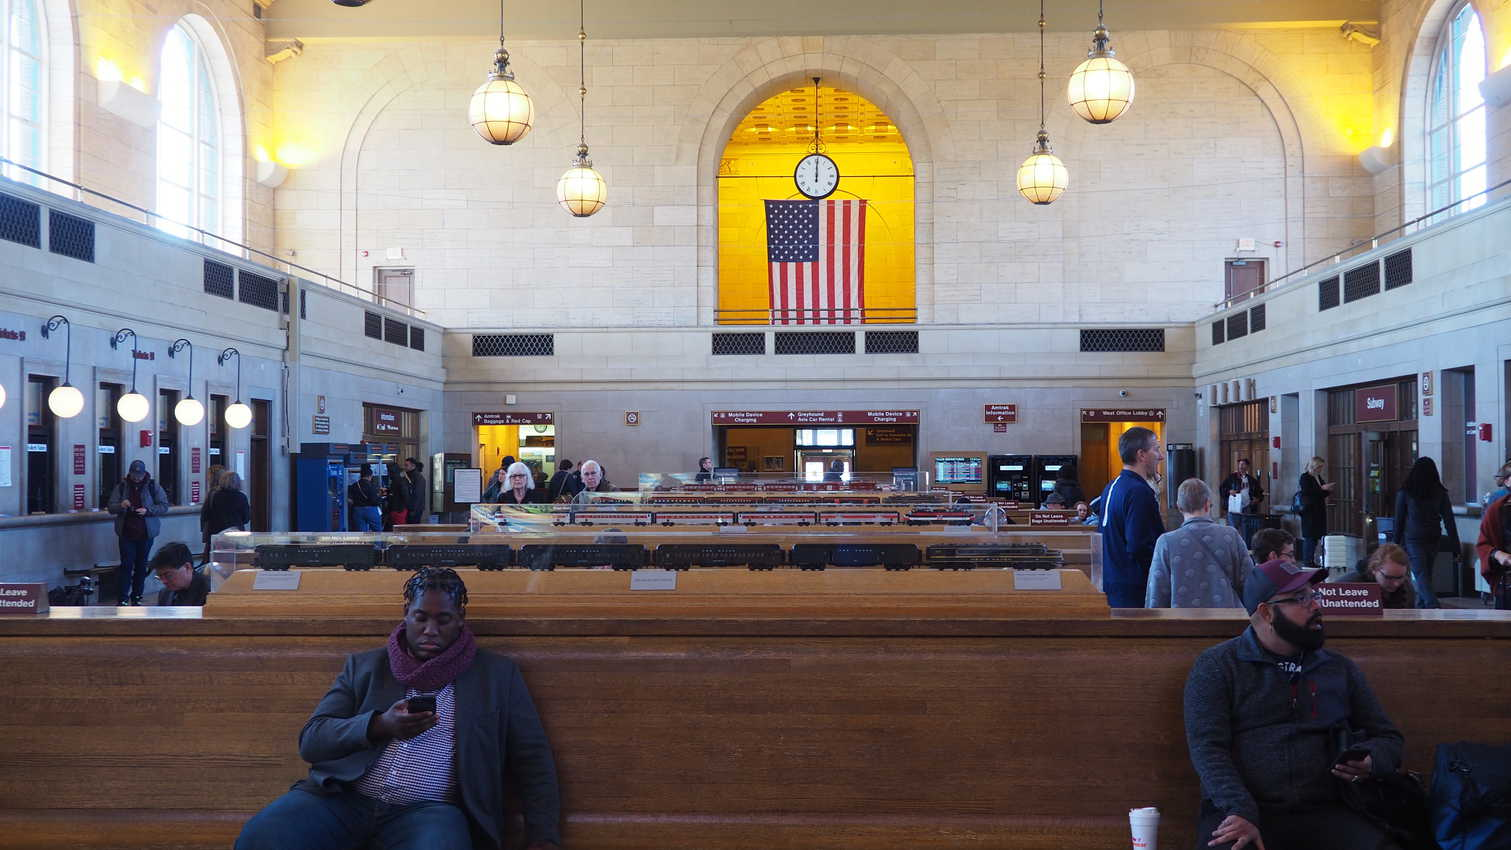 The inside of Union Station in New Haven Connecticut.